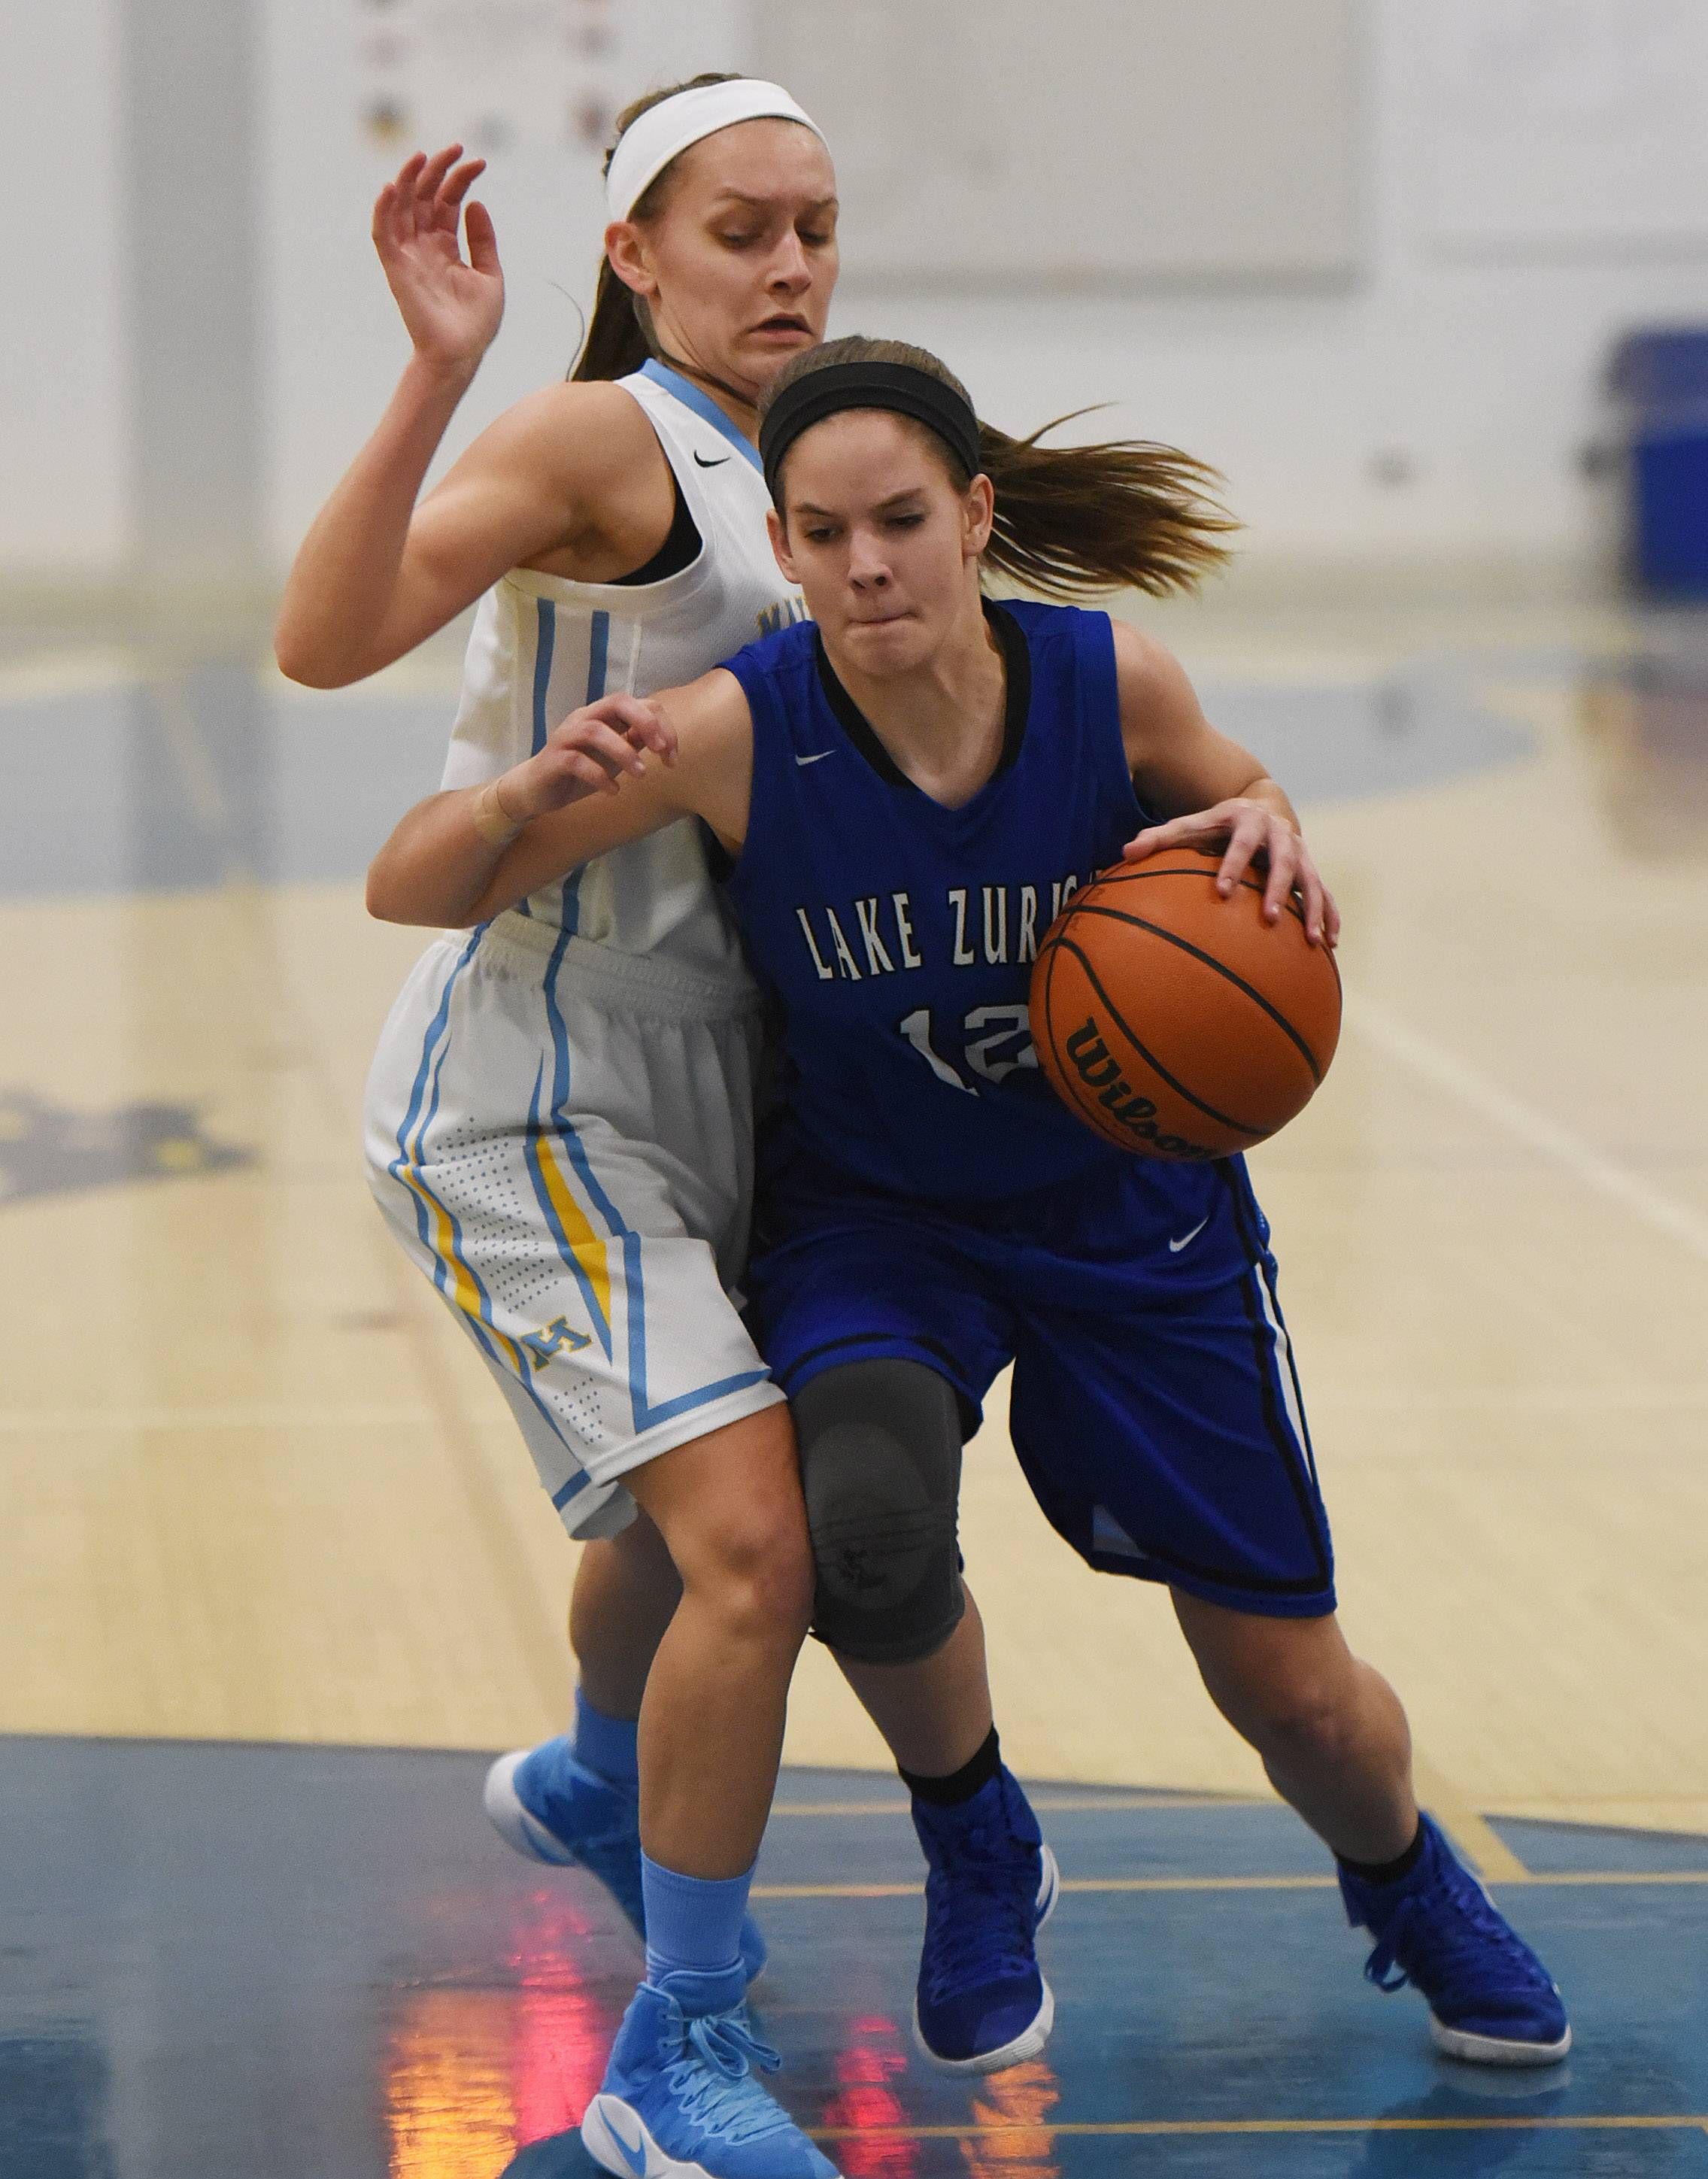 Lake Zurich's Brigid Ferguson, right, drives past Maine West's Catherine Johnson during Monday's game in Des Plaines.